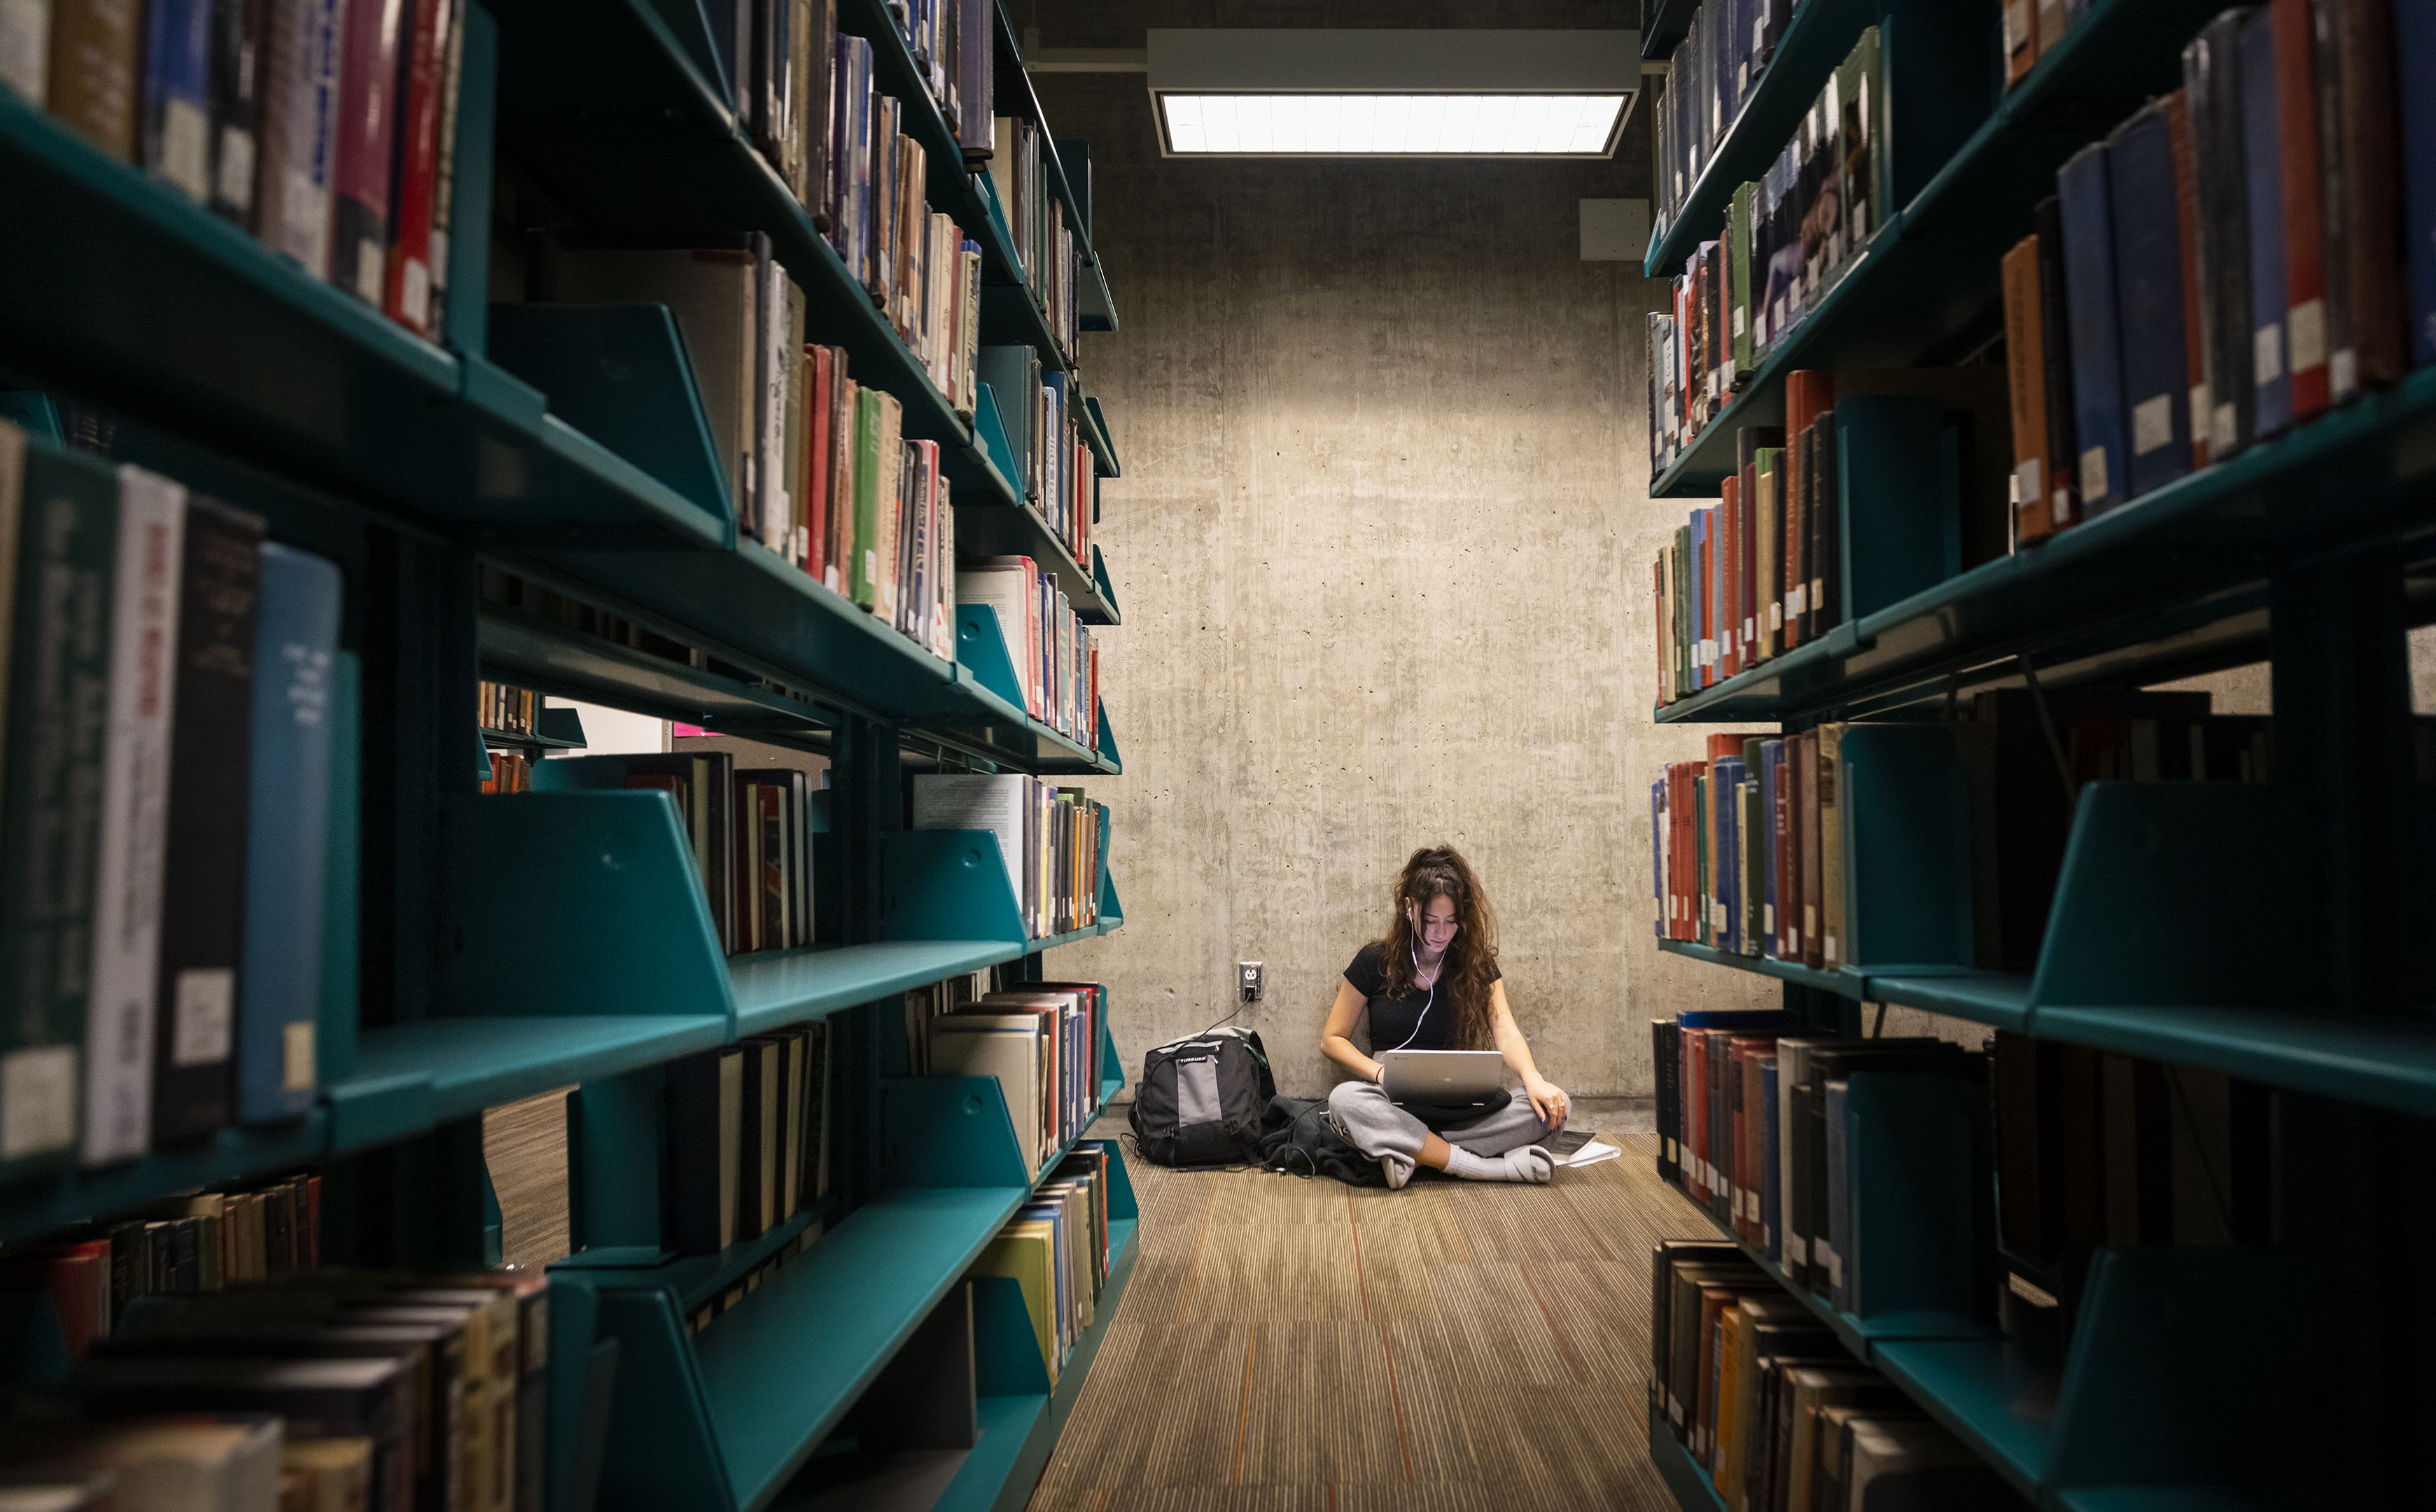 A woman sits on the floor with a laptop and backpack between rows of bookshelves in Cal Poly's Kennedy Library